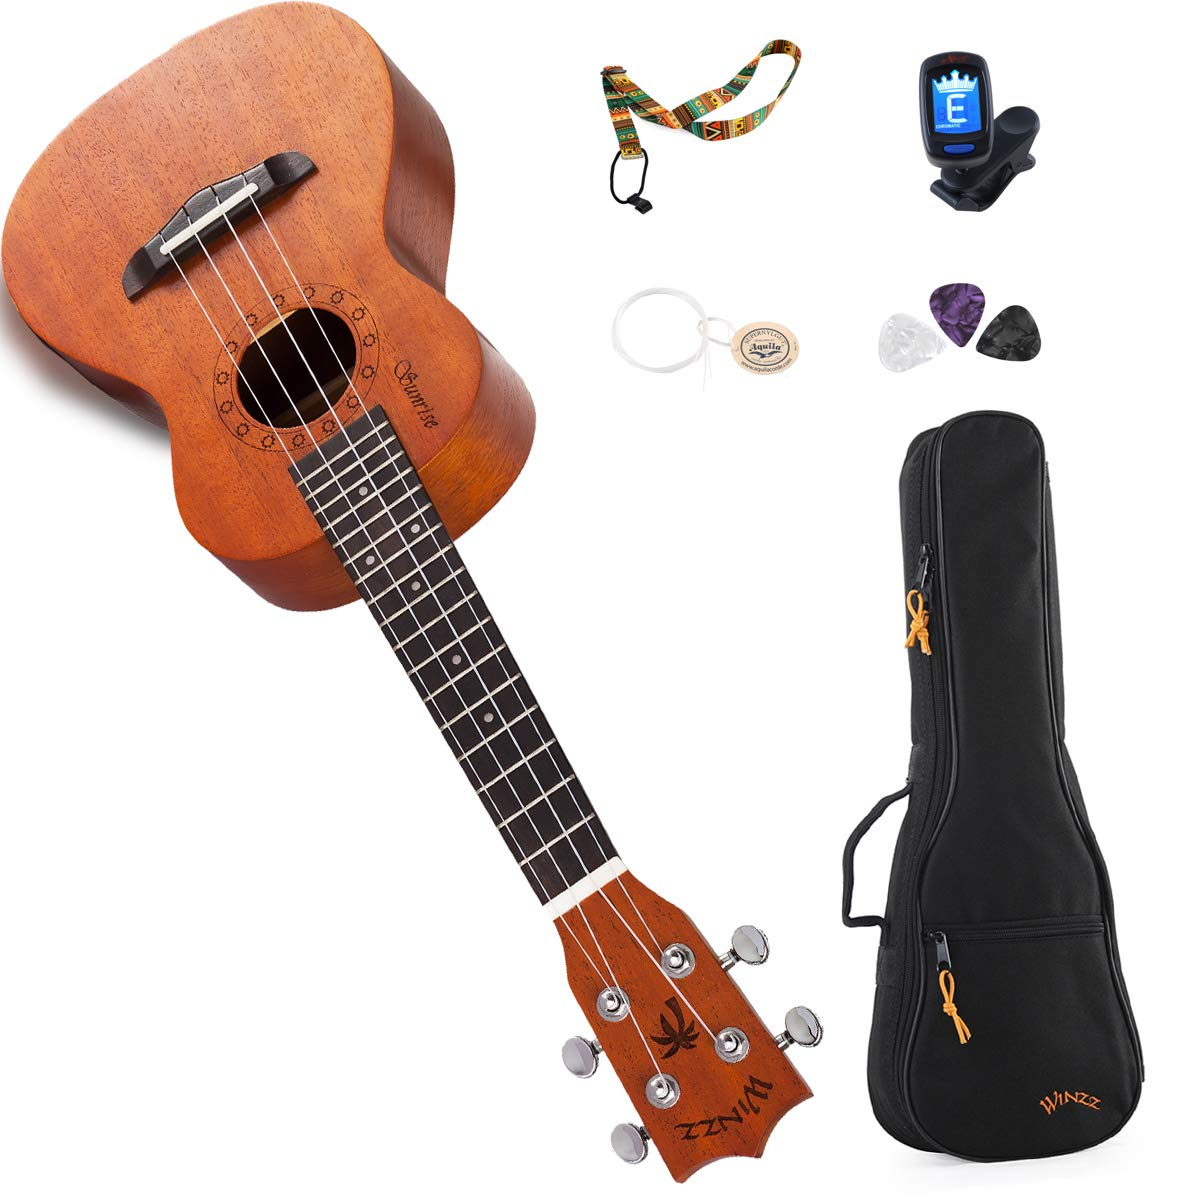 WINZZ Concert Mahogany Hawaii Ukulele with Bag, Tuner, Strap, Picks, Extra Strings, 23 Inches